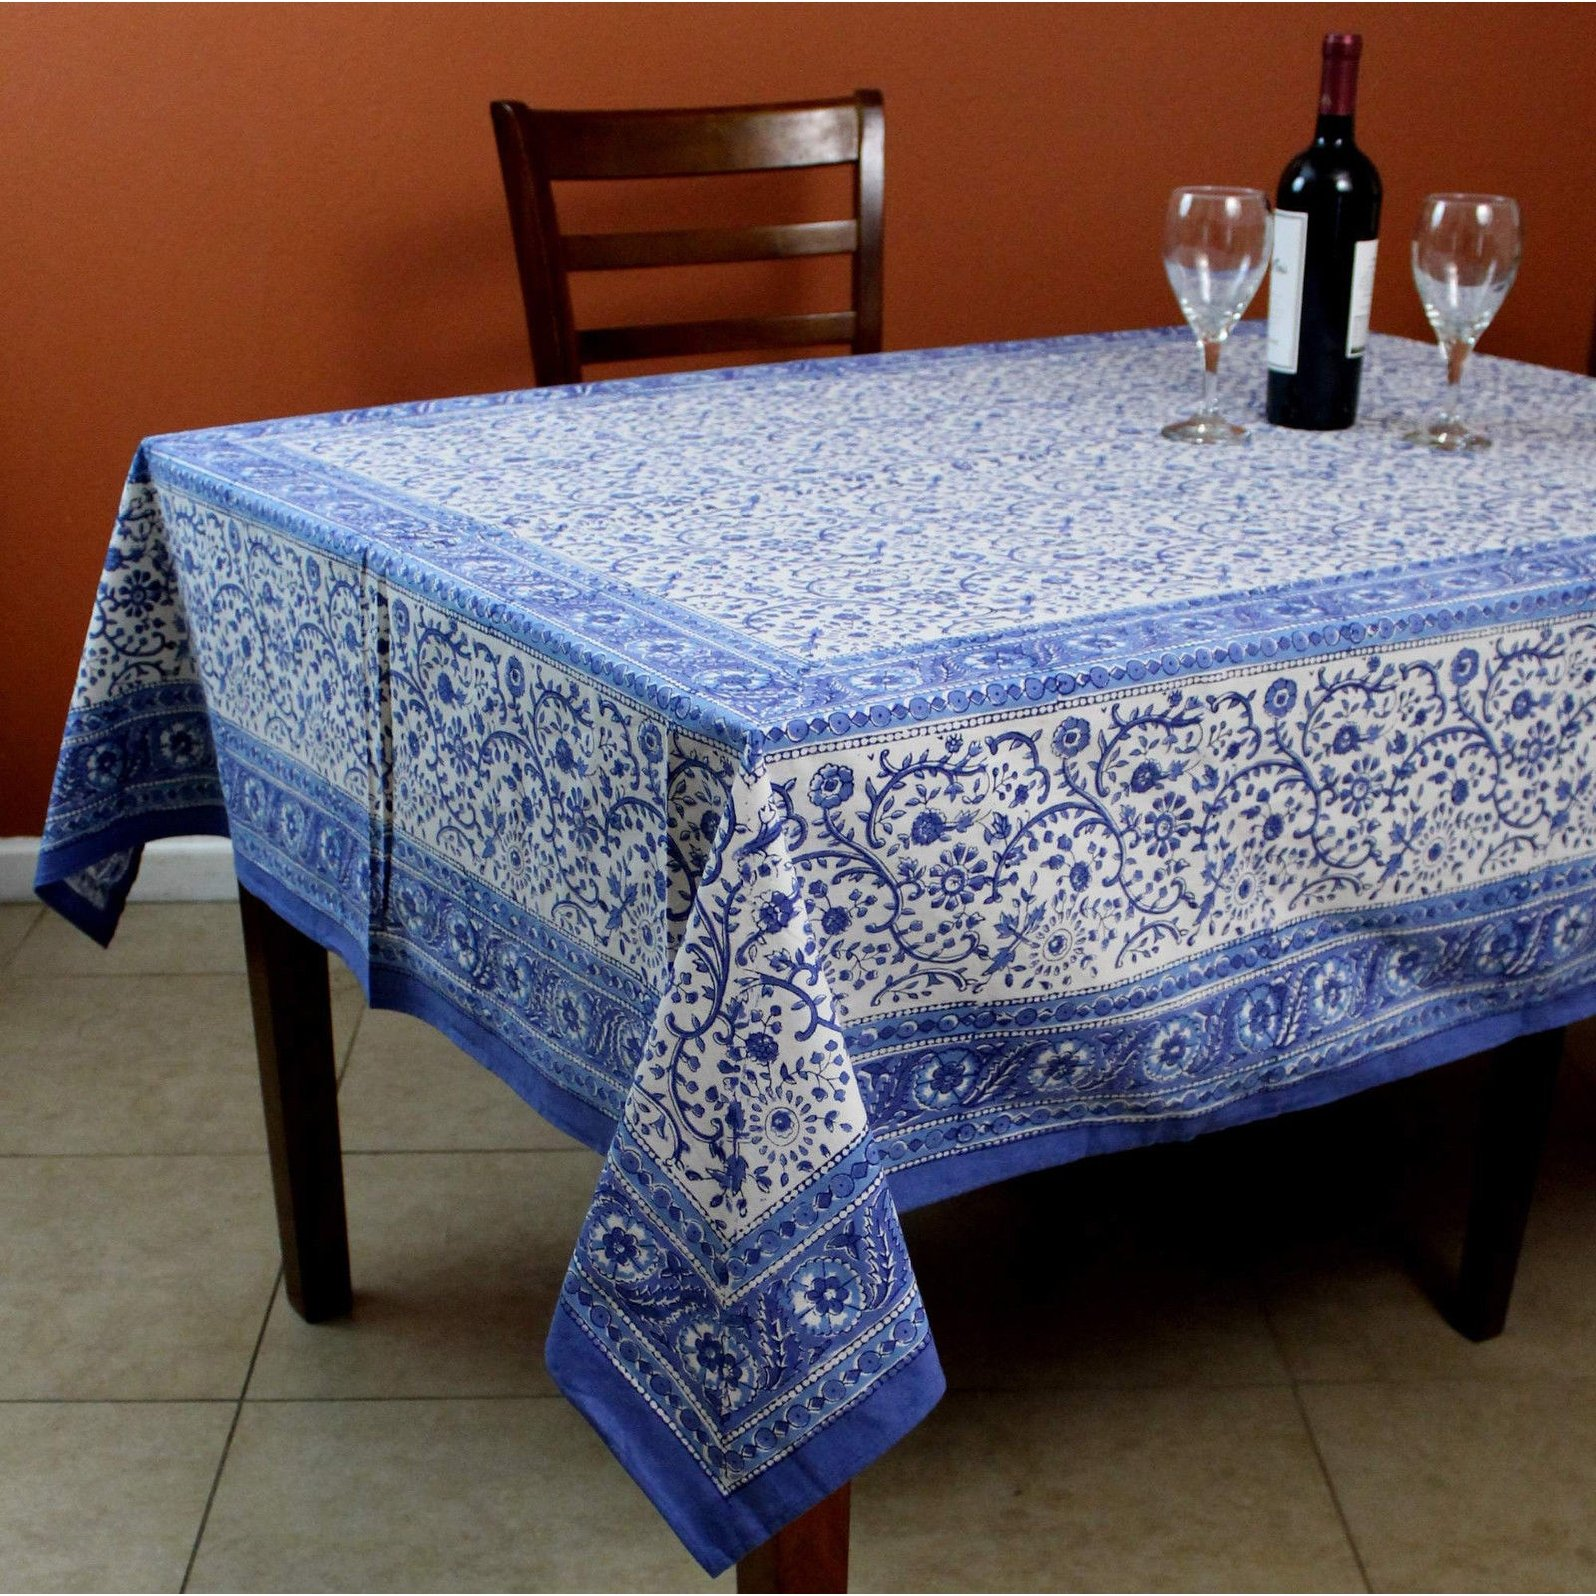 rajasthan block print floral round tablecloth rectangular cotton table napkins placemats runner for inch accent free shipping orders over rectangle leather dining room chairs tall